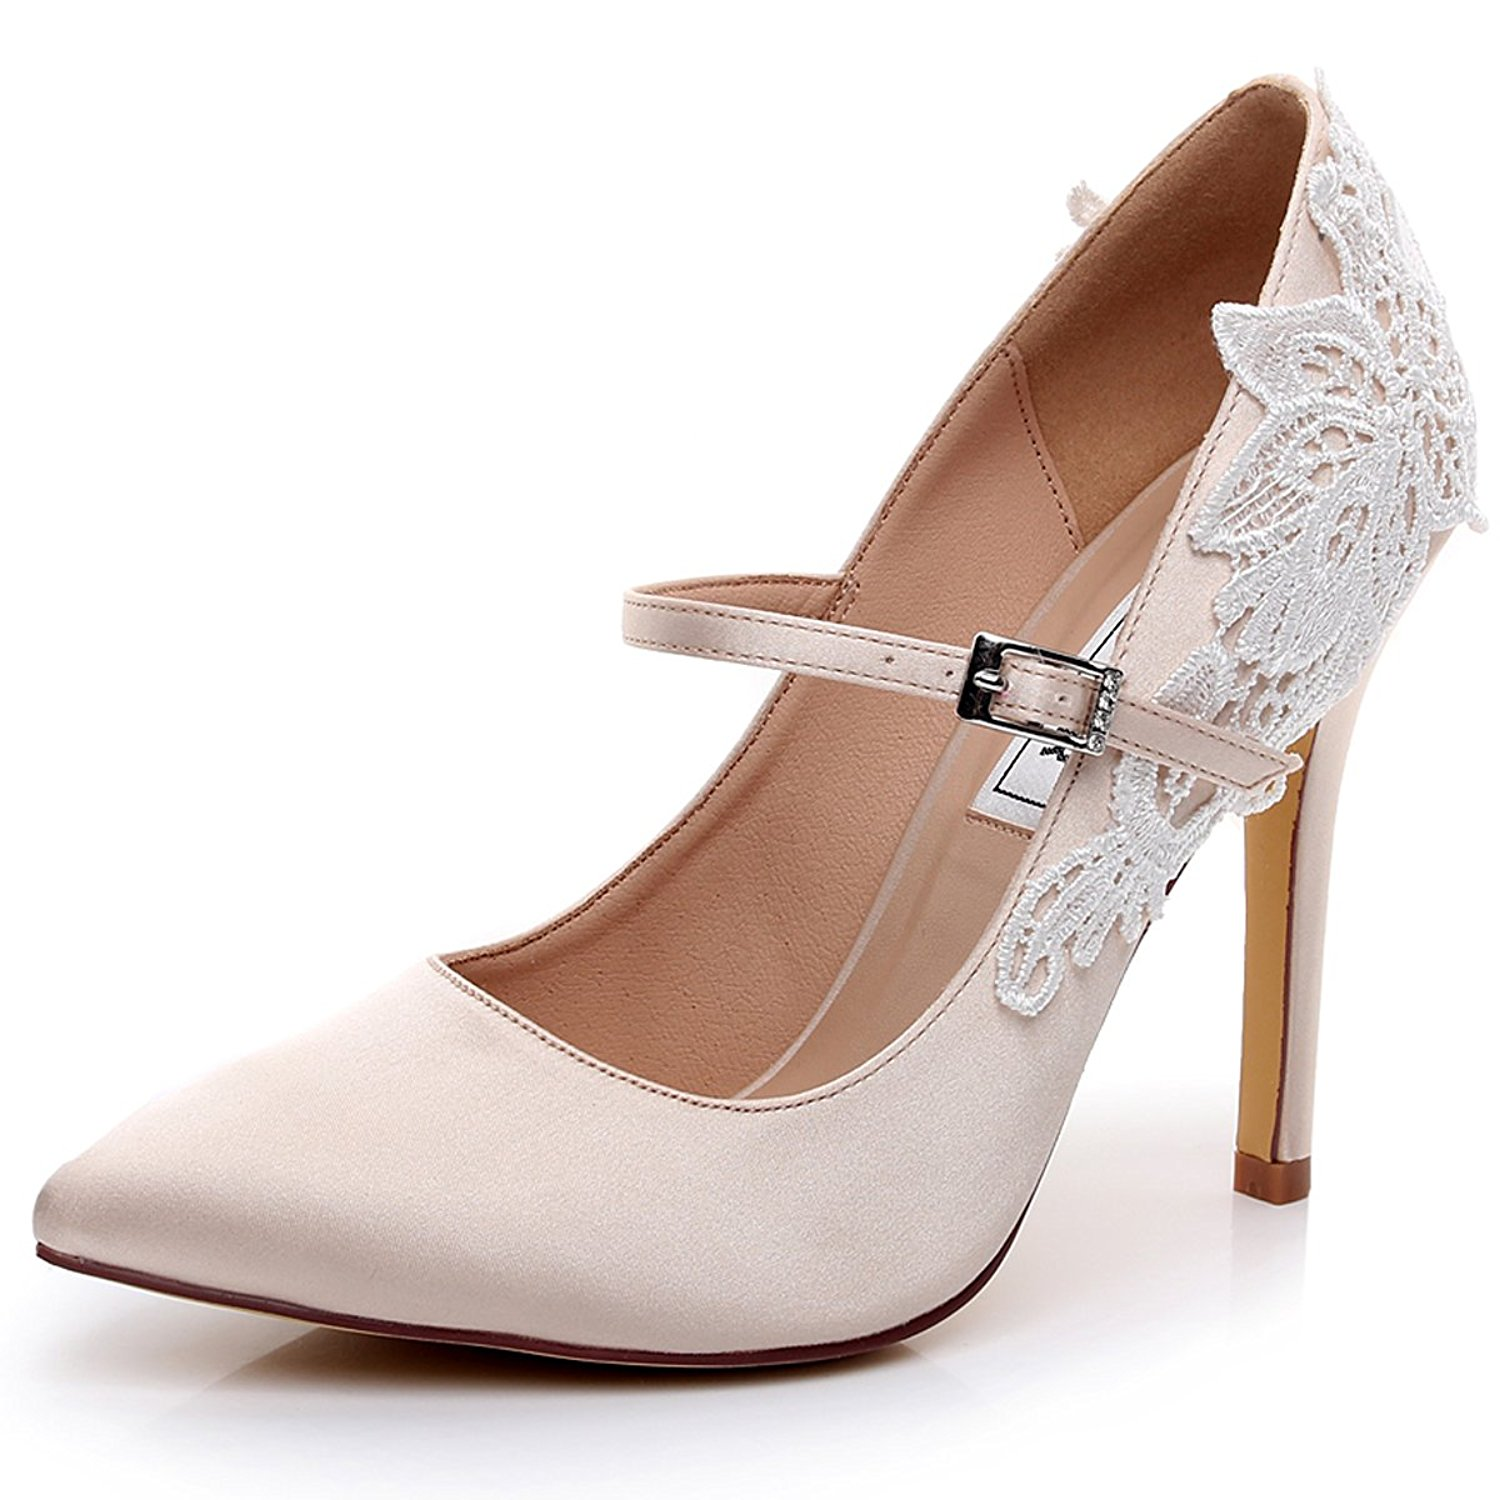 dddc0fcbe5d Get Quotations · LUXVEER Satin Wedding Shoes Sexy Women Shoes with Lace  Flowers Bridal Shoes High Heel Evening Shoes